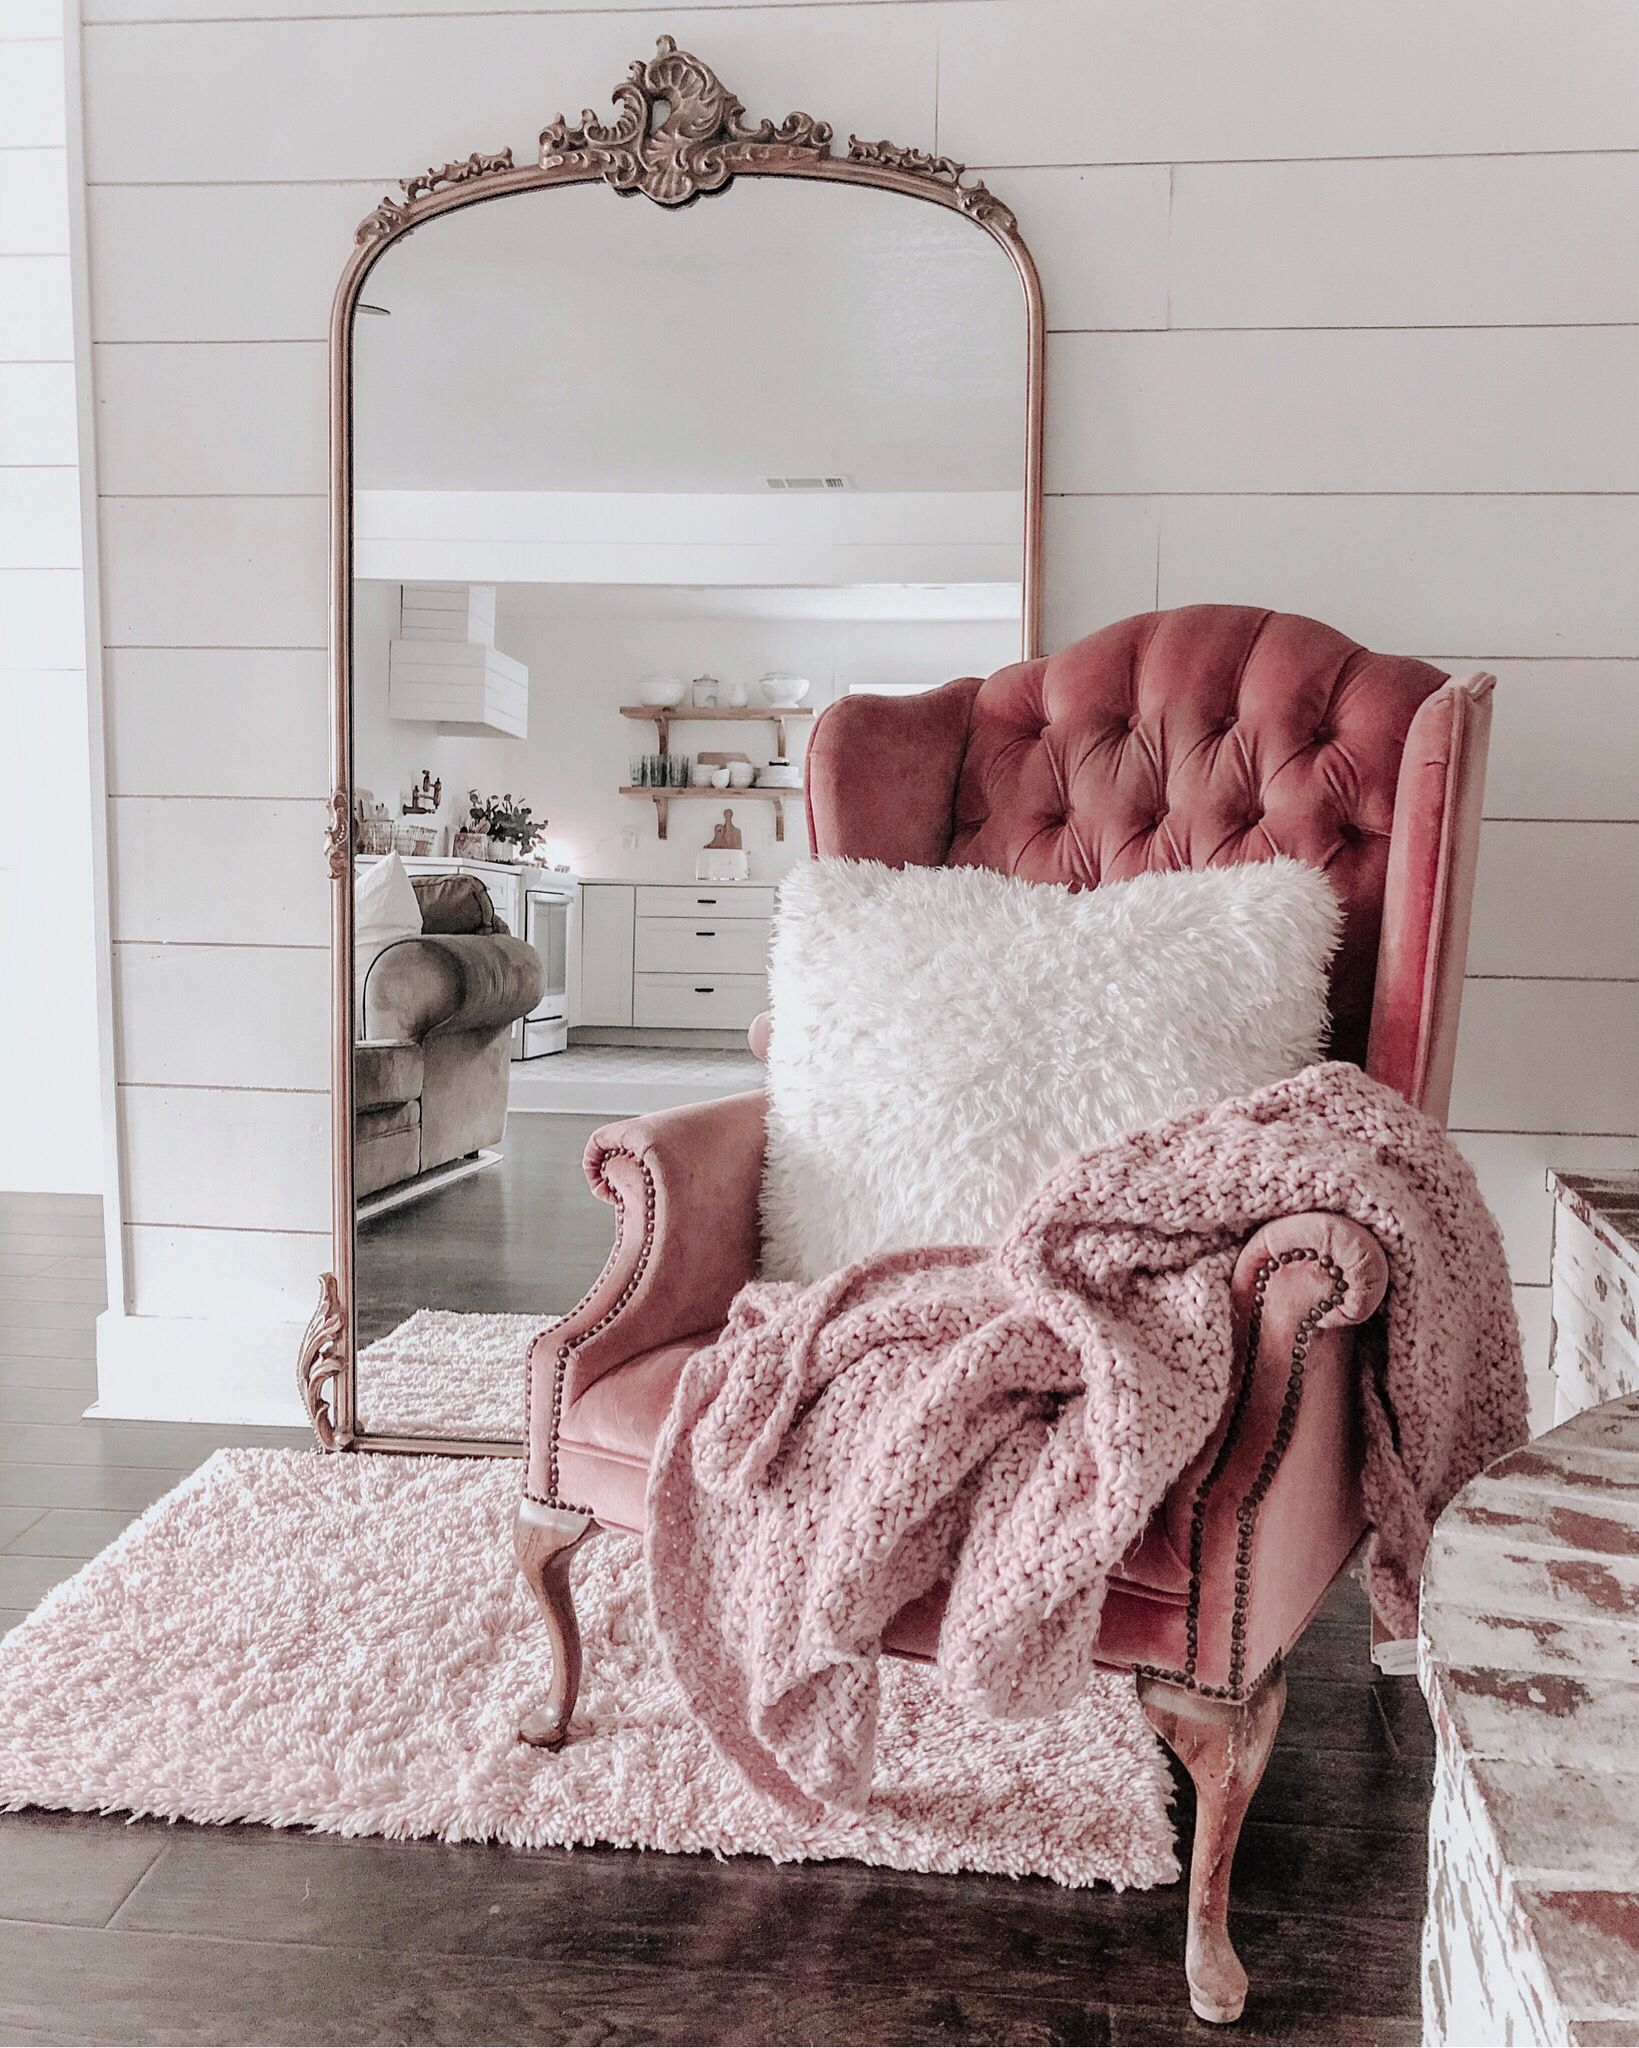 Antique | Shabby chic decor bedroom, Bedroom decor, Shabby